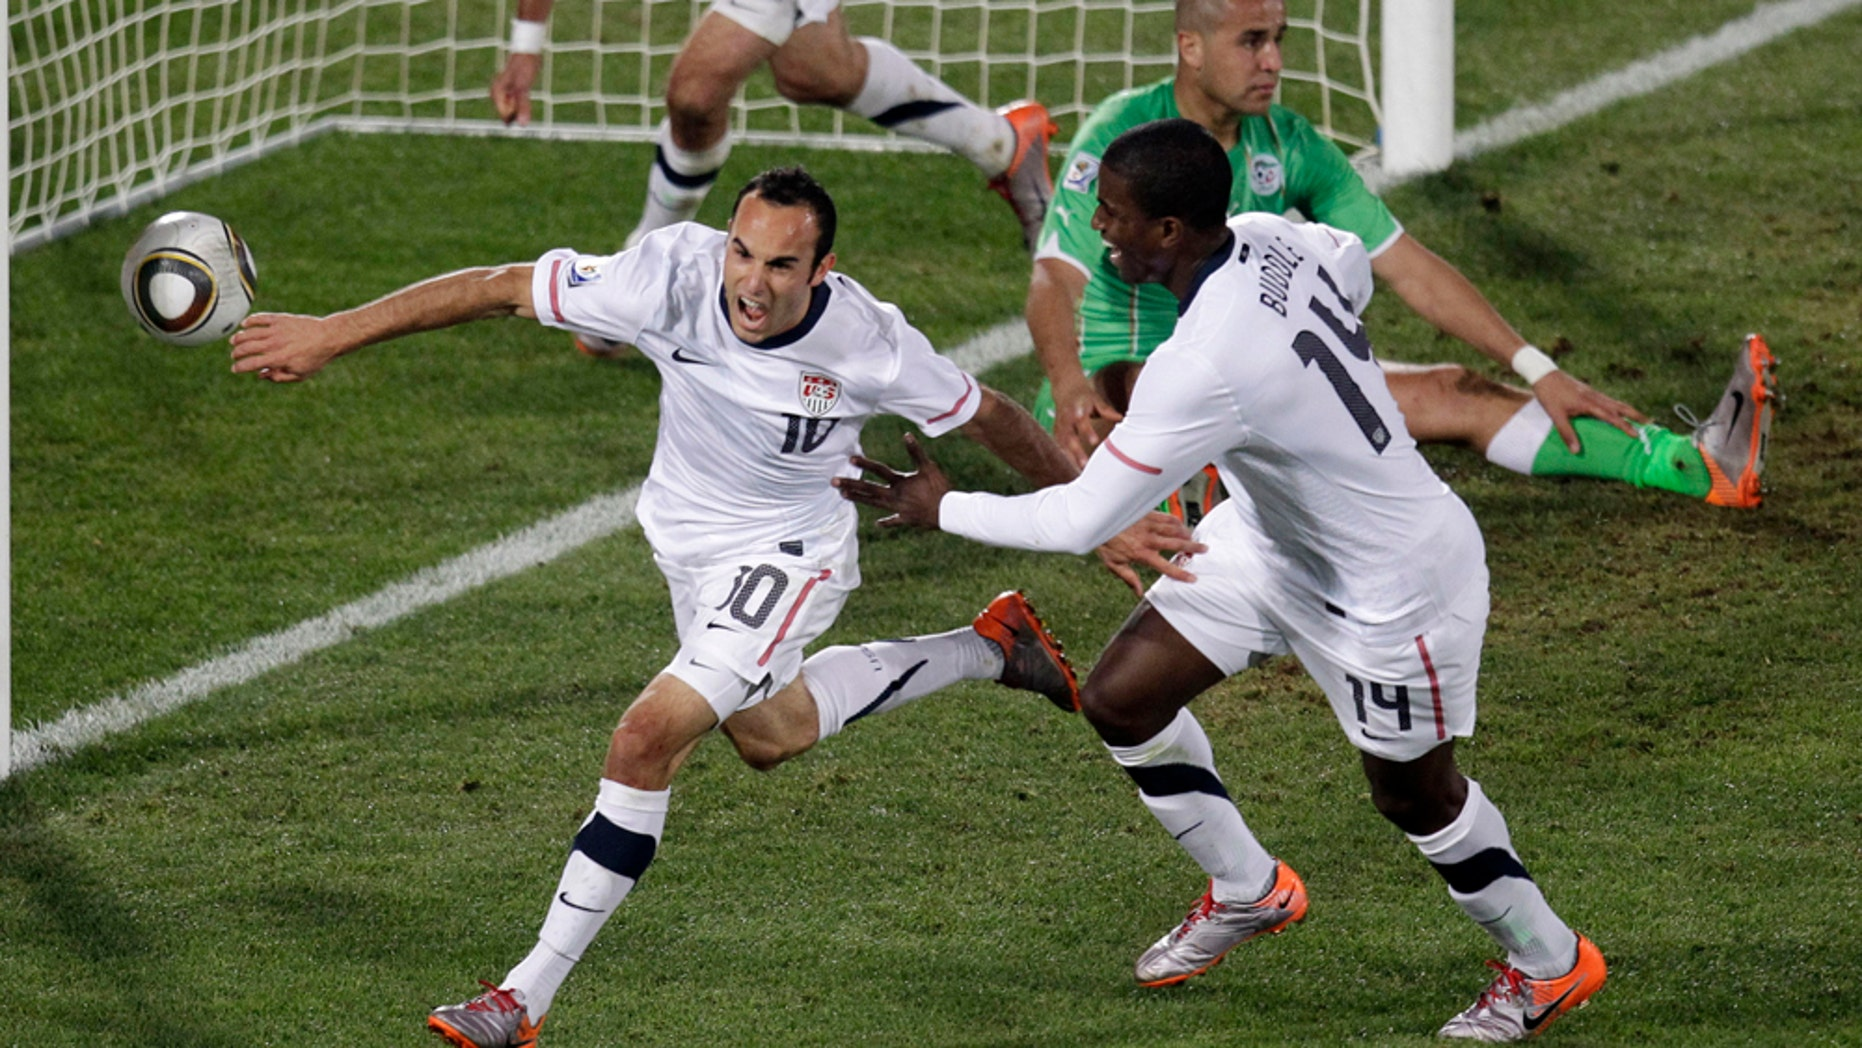 United States' Landon Donovan, front left, celebrates after scoring a goal with fellow team members United States' Clint Dempsey, back left, and United States' Edson Buddle, front right, during the World Cup group C soccer match between the United States and Algeria at the Loftus Versfeld Stadium in Pretoria, South Africa, Wednesday, June 23, 2010.  (AP Photo/Michael Sohn)